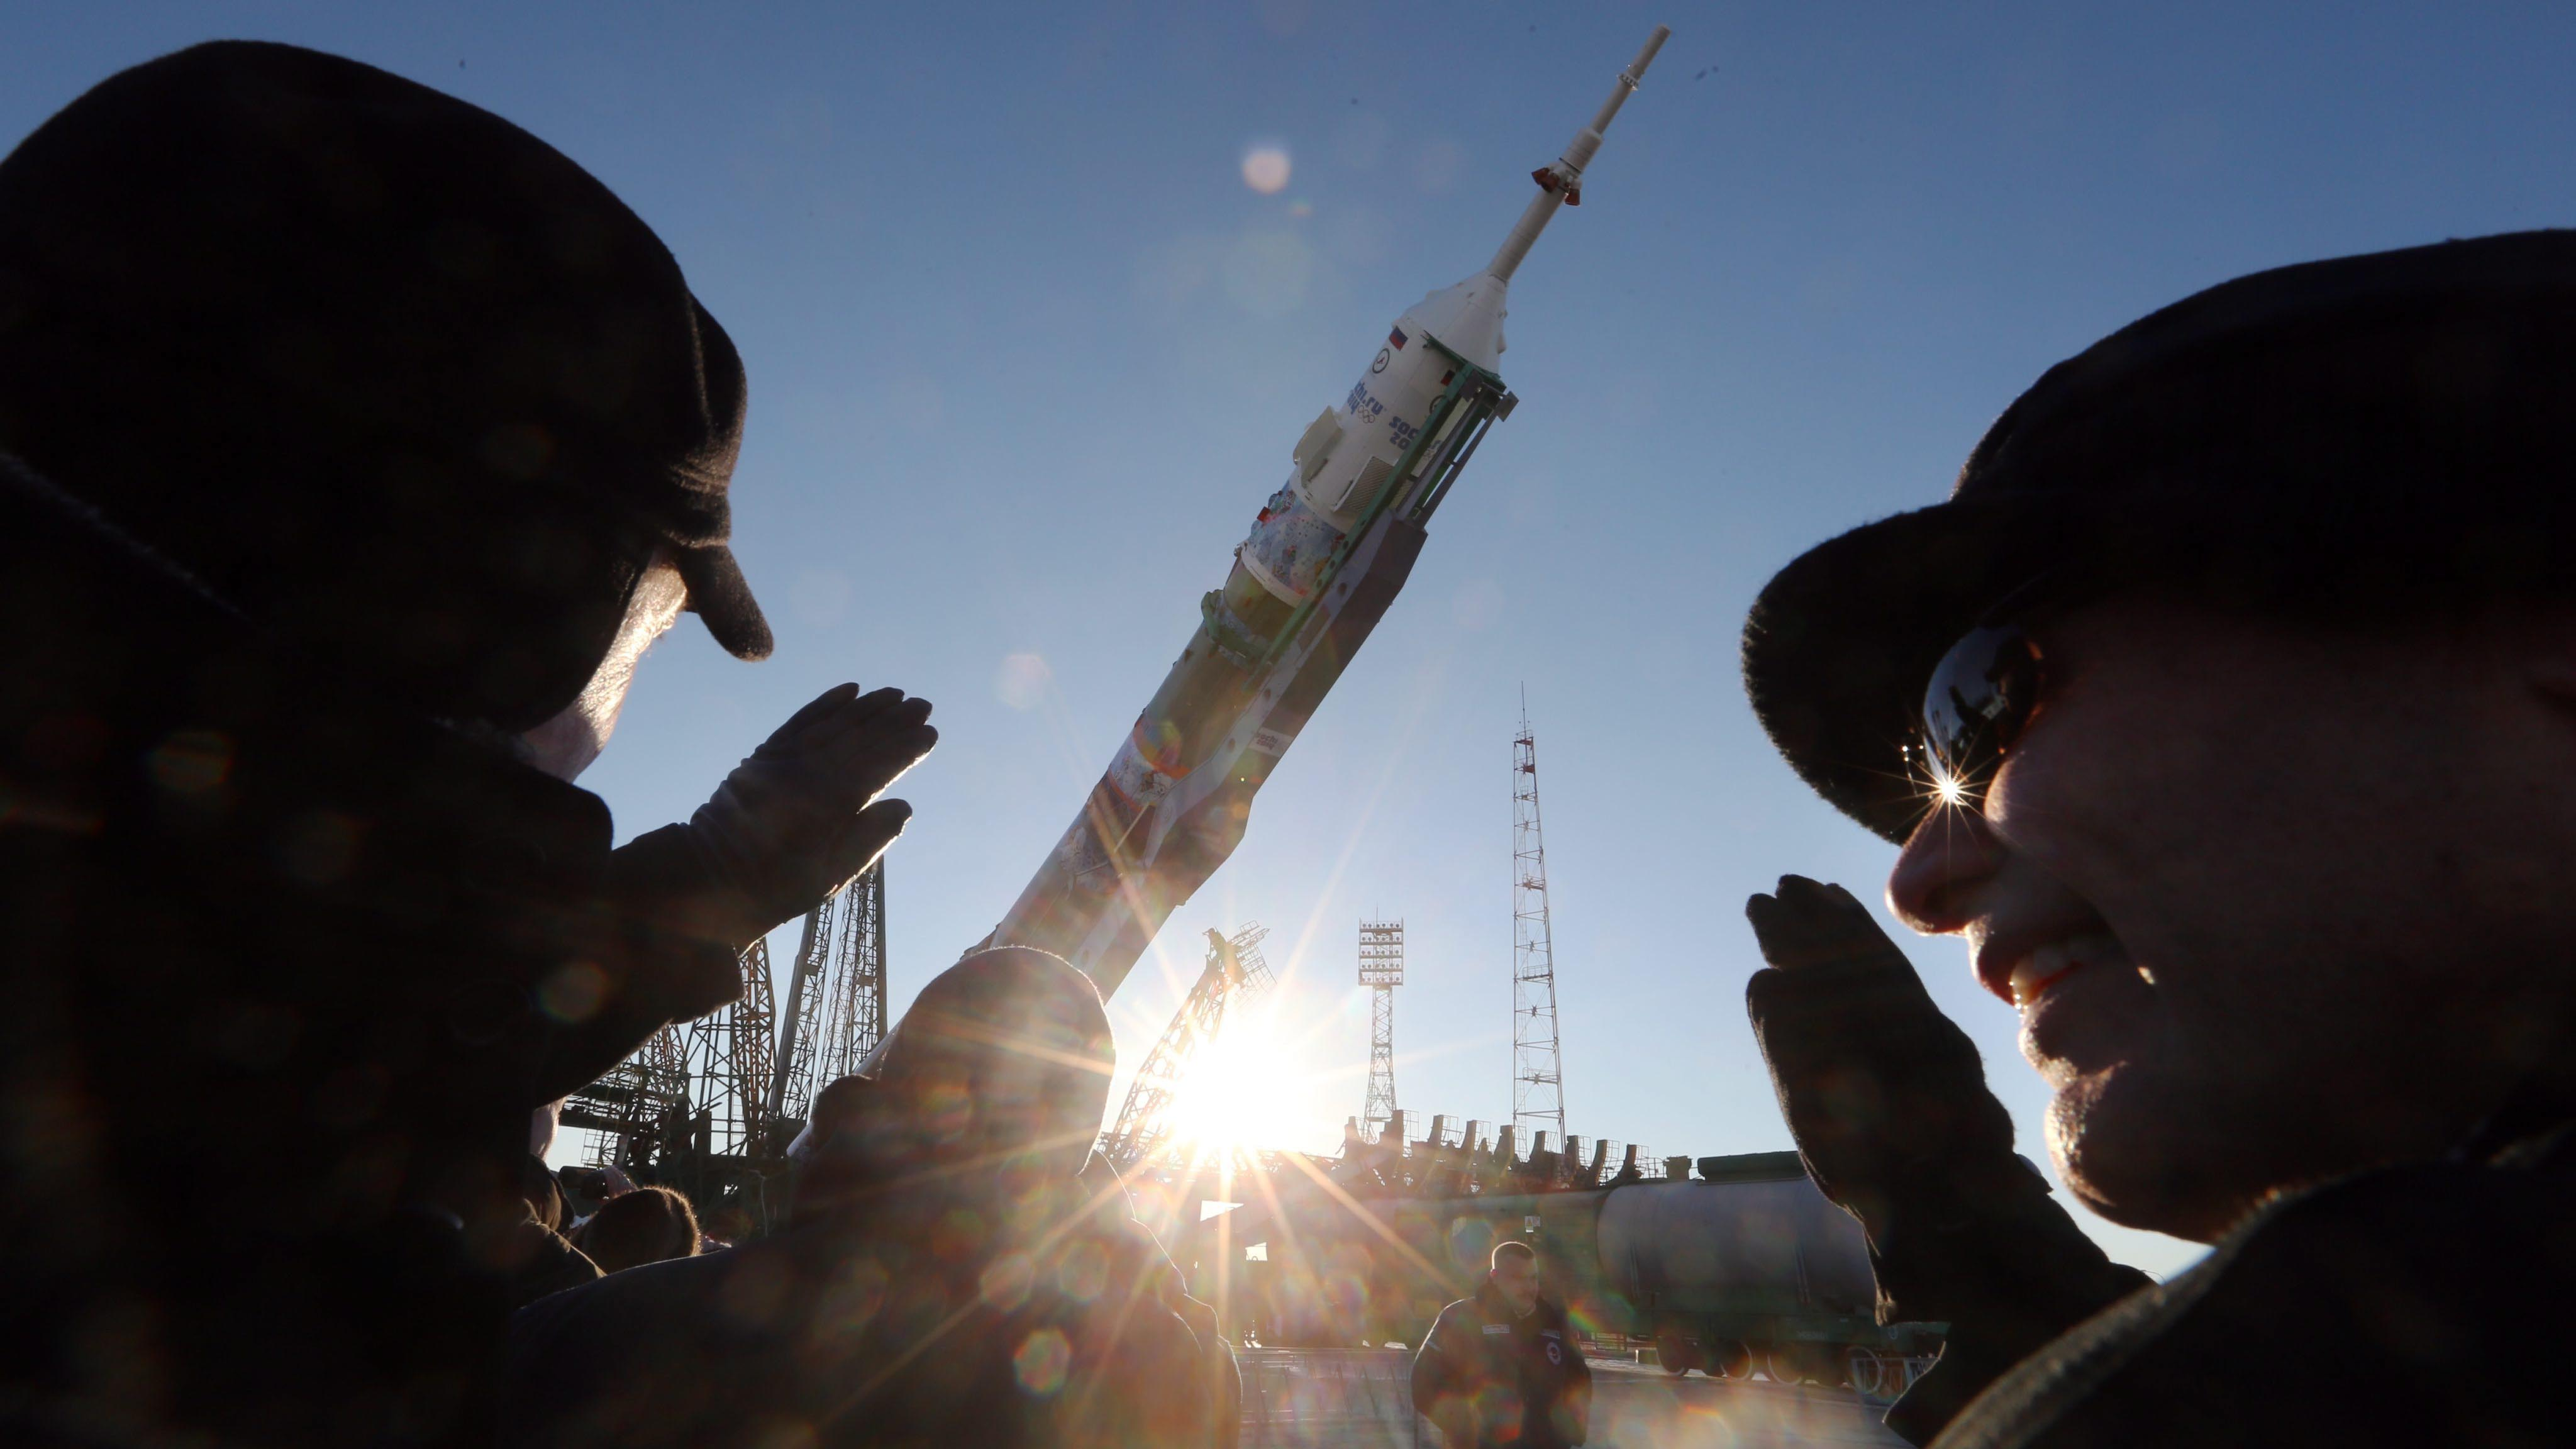 Soyuz TMA-11M spacecraft, moved for installation at a launch pad at a cosmodrome in Baikonur